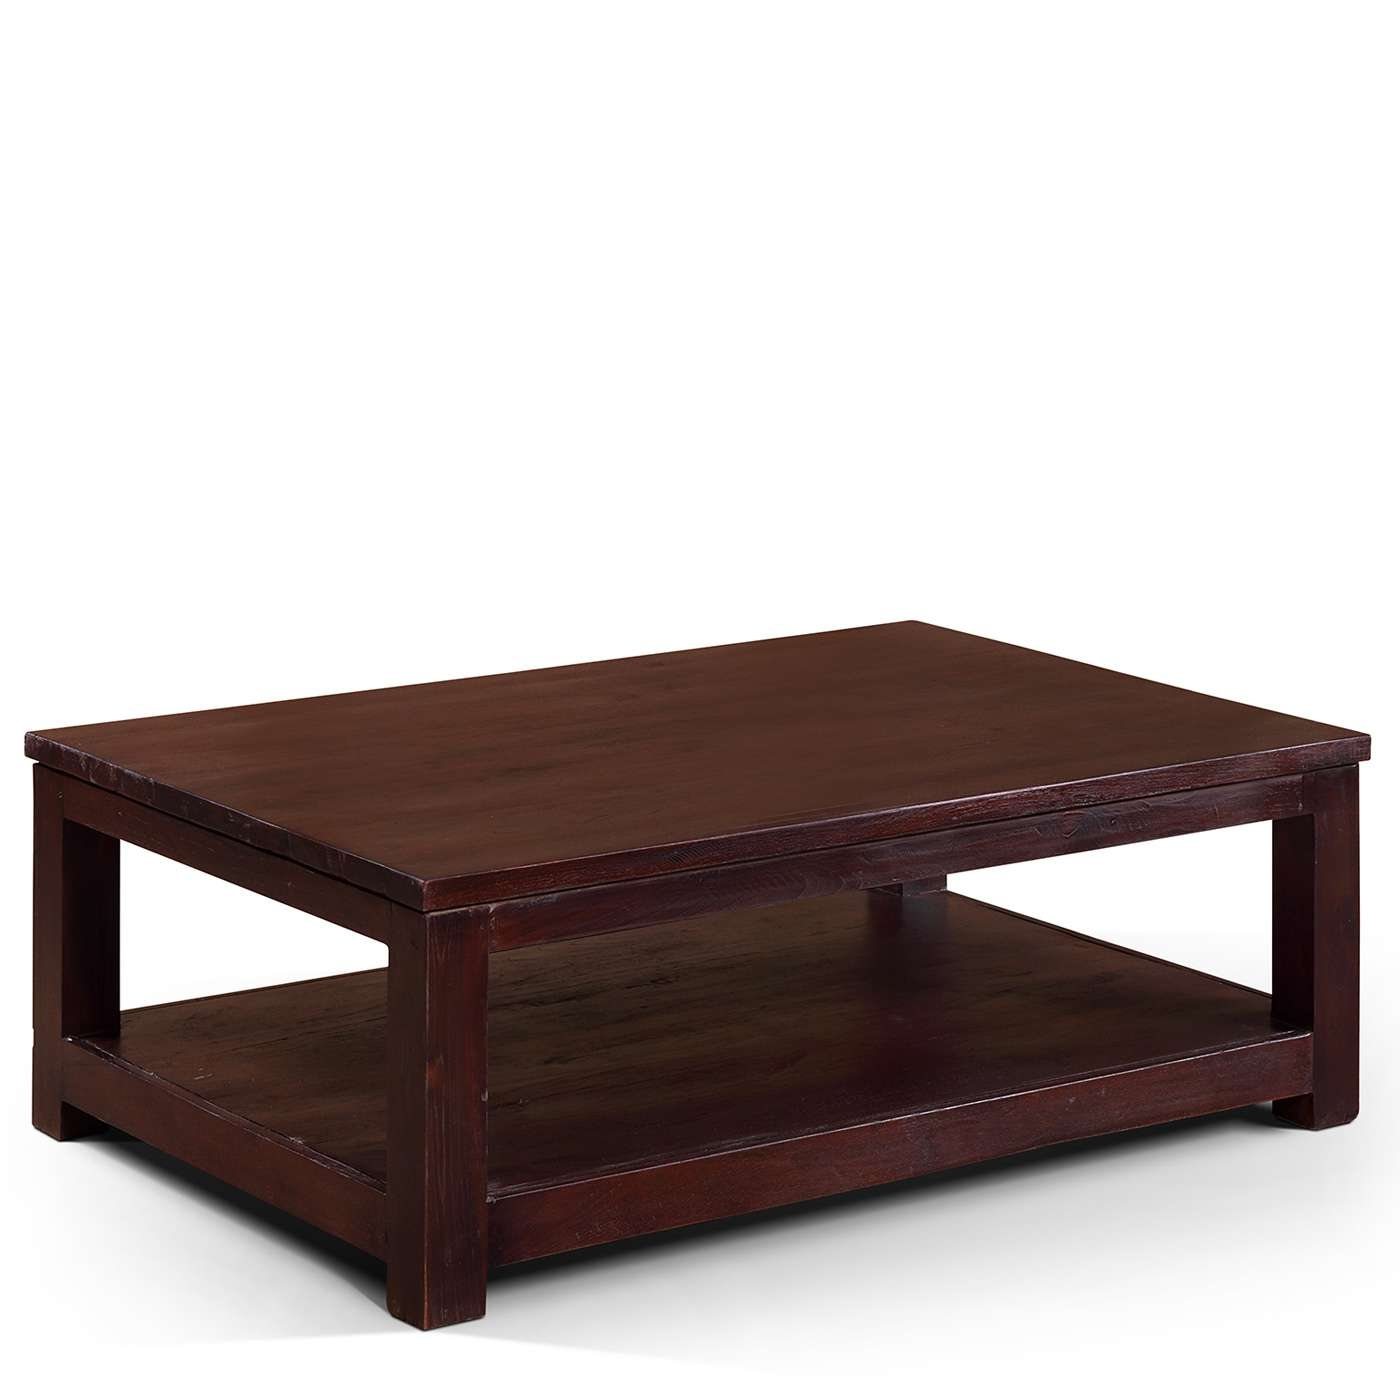 Coffee Tables : Dark Wood Coffee Table Black Coffee Table' Rustic Intended For Best And Newest Dark Wooden Coffee Tables (View 6 of 20)